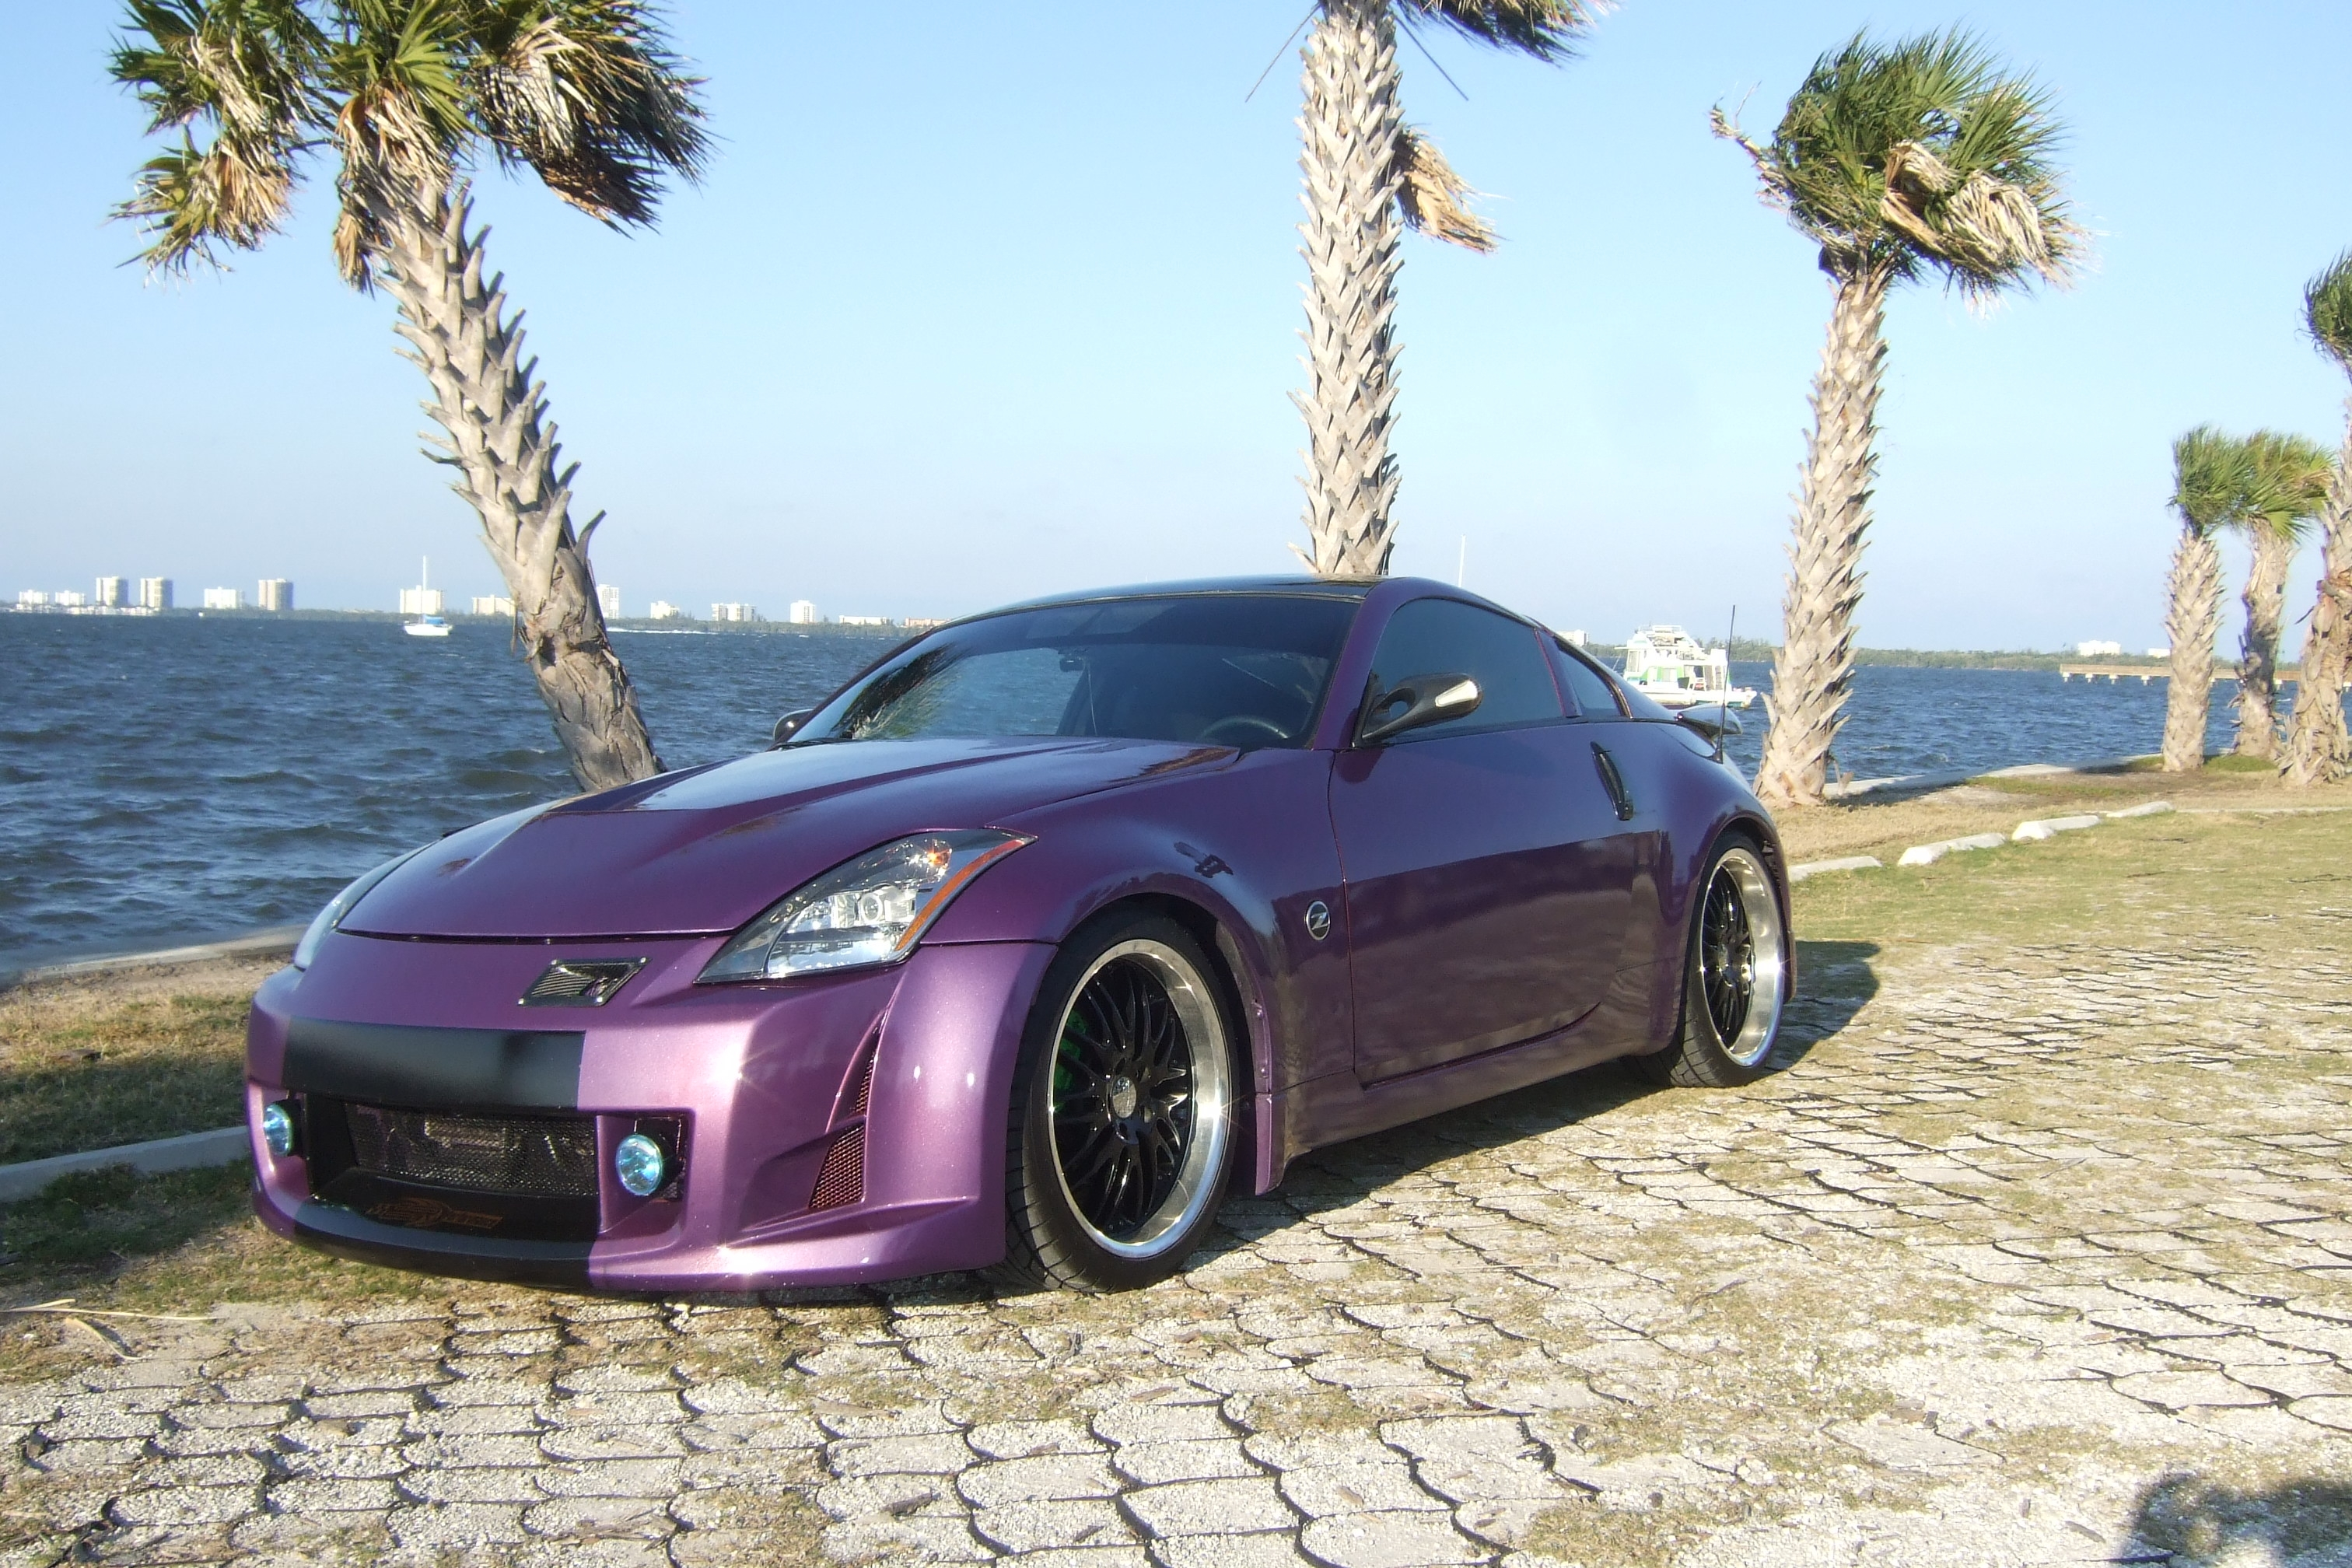 elitefitness24 2003 Nissan 350Z Specs, Photos, Modification Info at